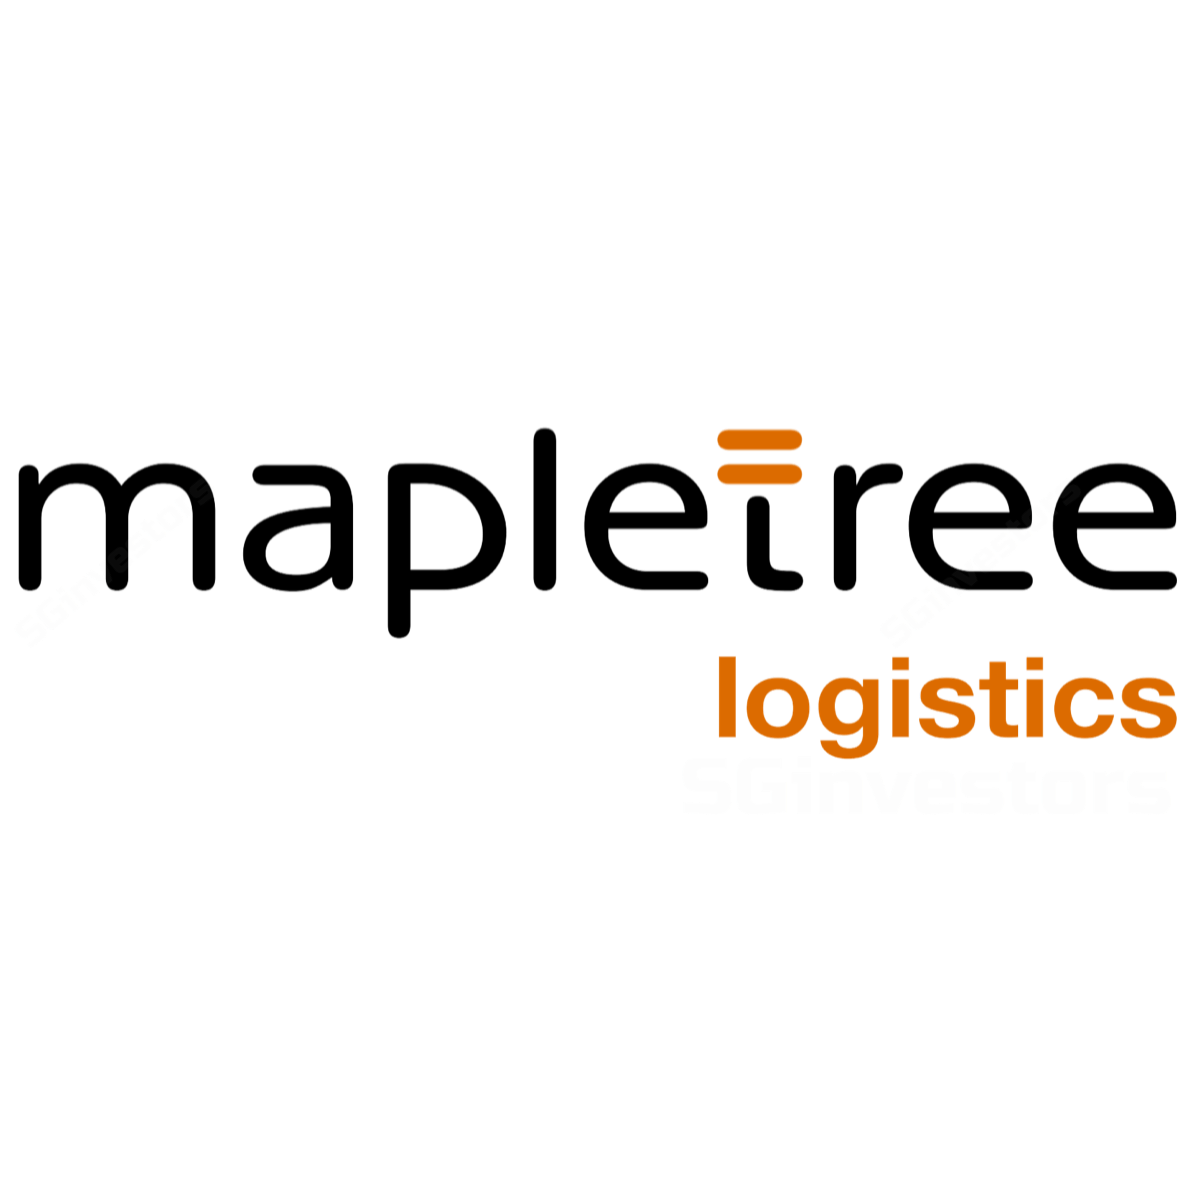 Mapletree Logistics Trust (MLT SP) - DBS Vickers 2017-10-25: Better Tidings Ahead ..